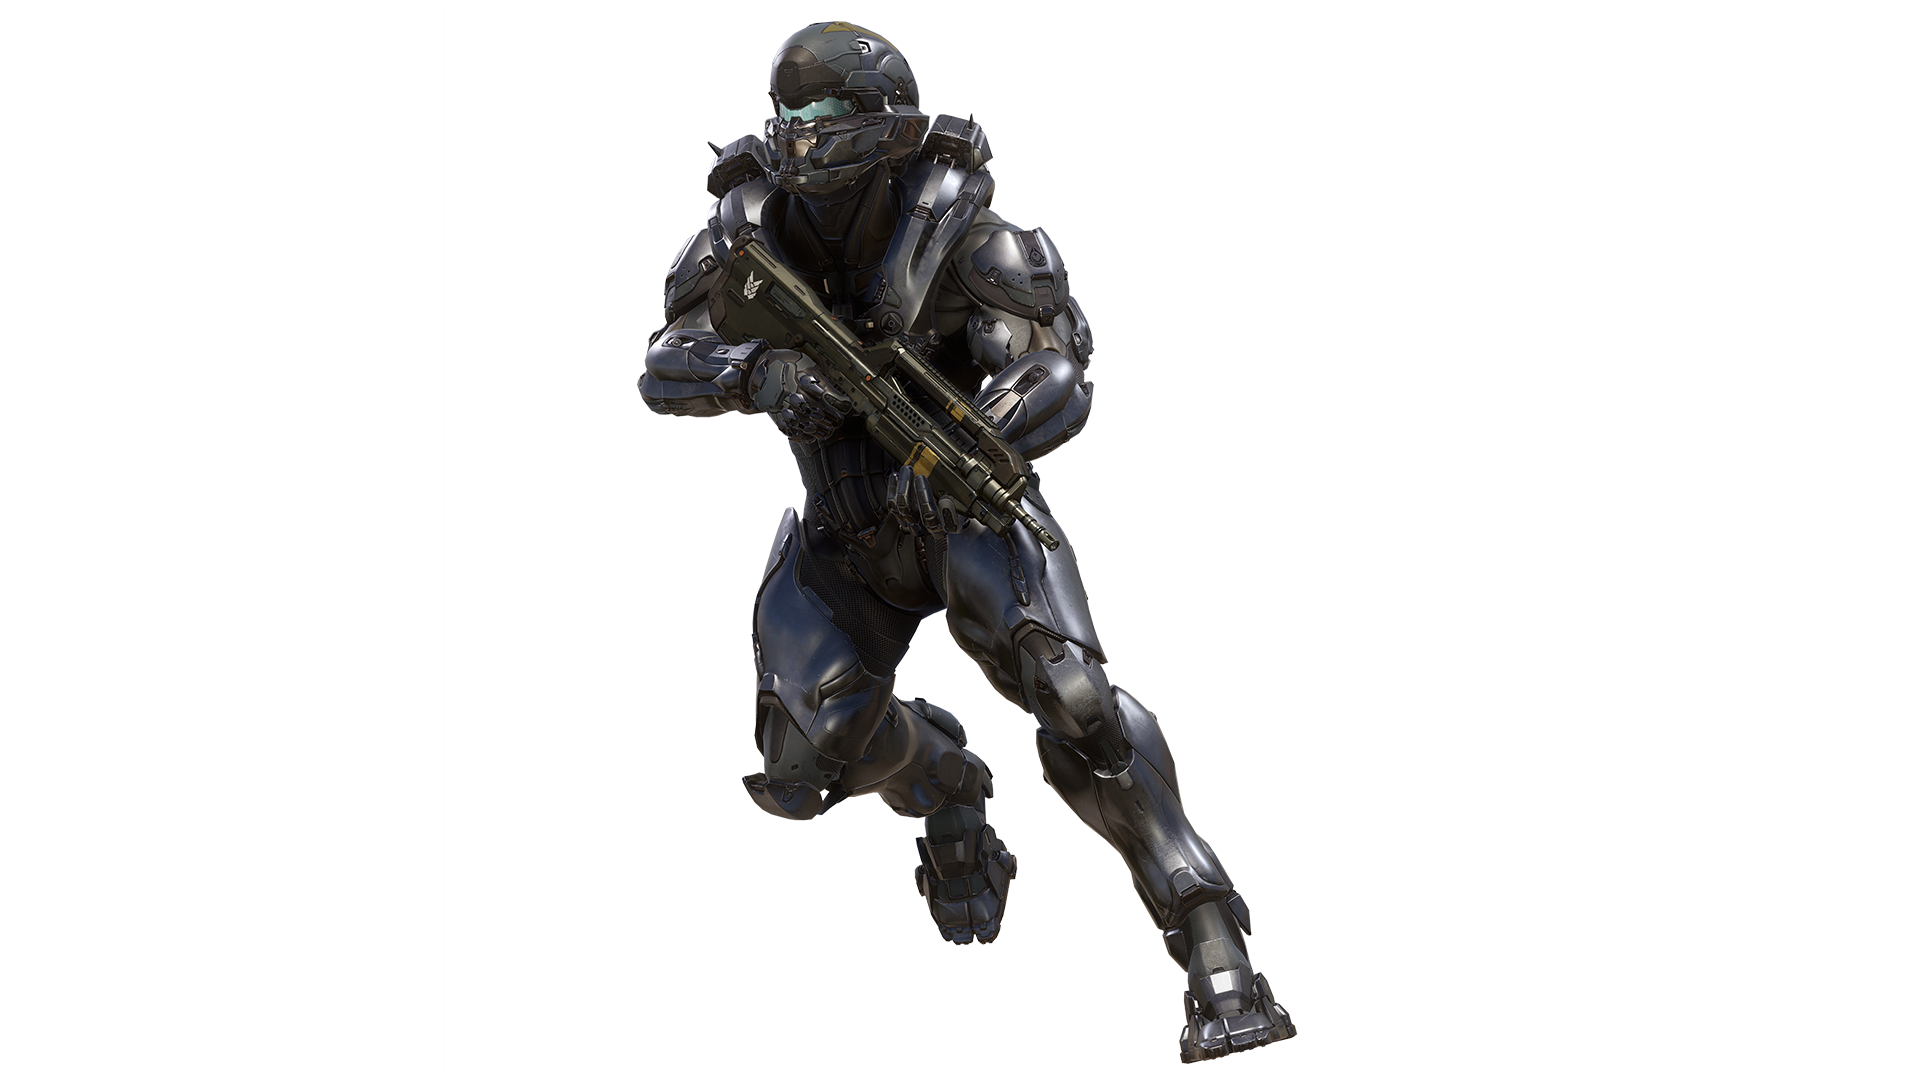 Halo 5 Guardians Discussion